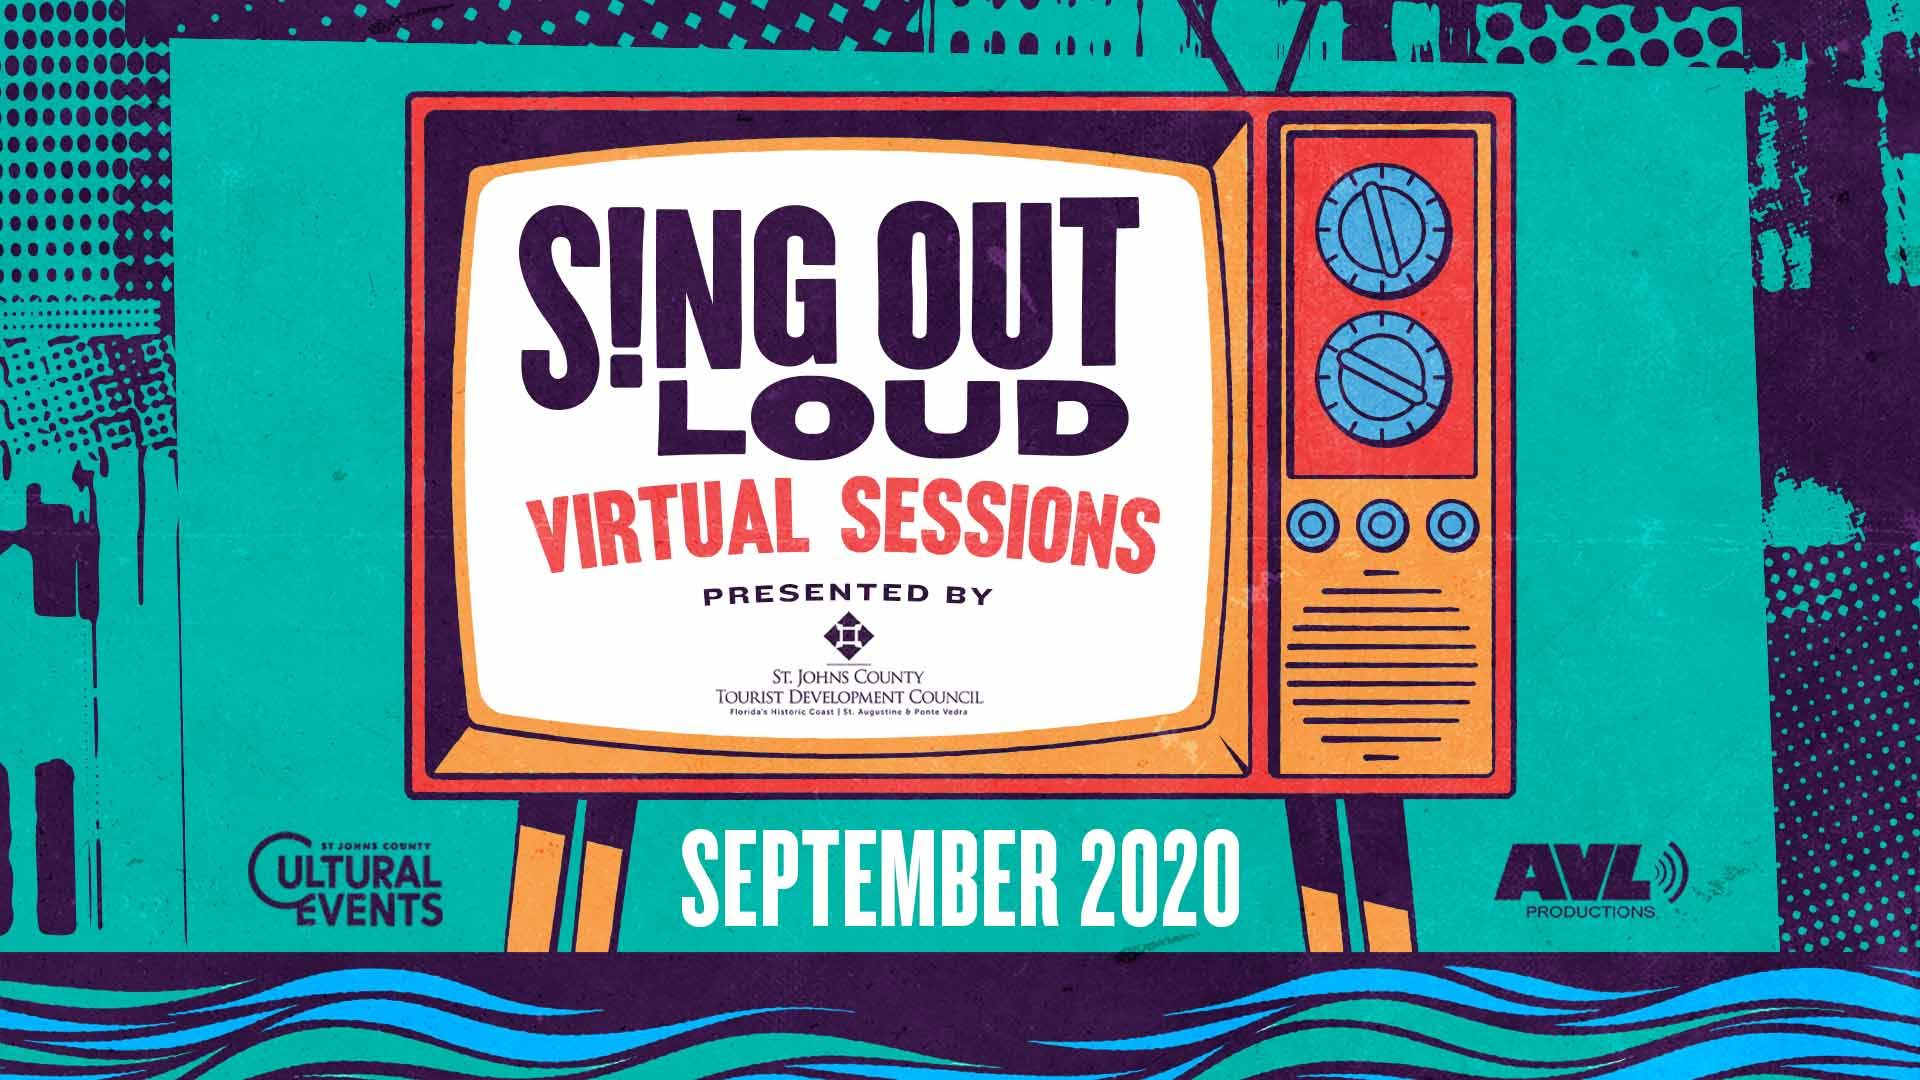 Sing Out Loud: Virtual Sessions